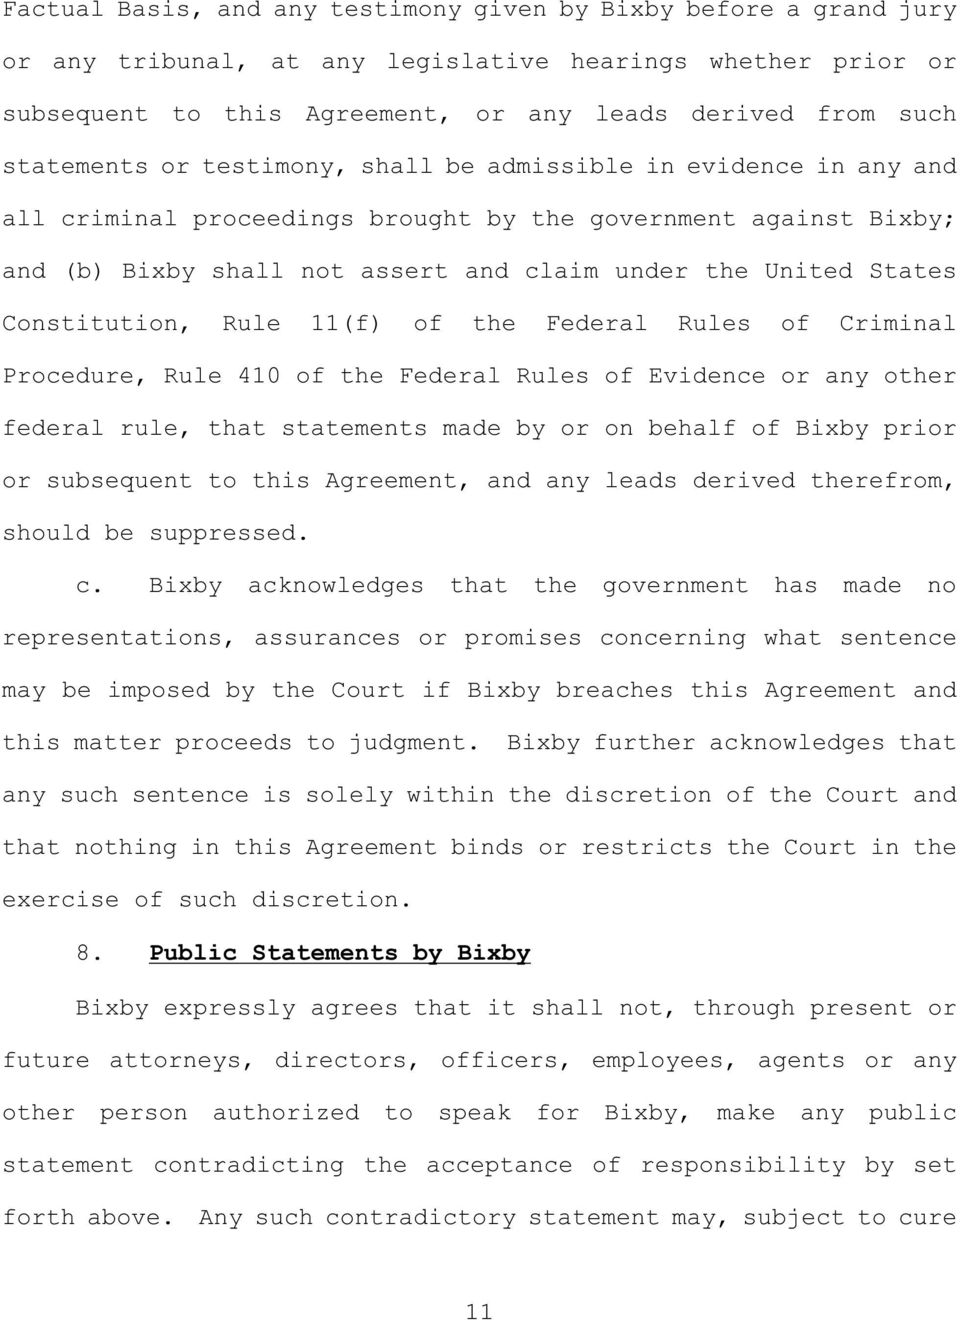 Constitution, Rule 11(f) of the Federal Rules of Criminal Procedure, Rule 410 of the Federal Rules of Evidence or any other federal rule, that statements made by or on behalf of Bixby prior or